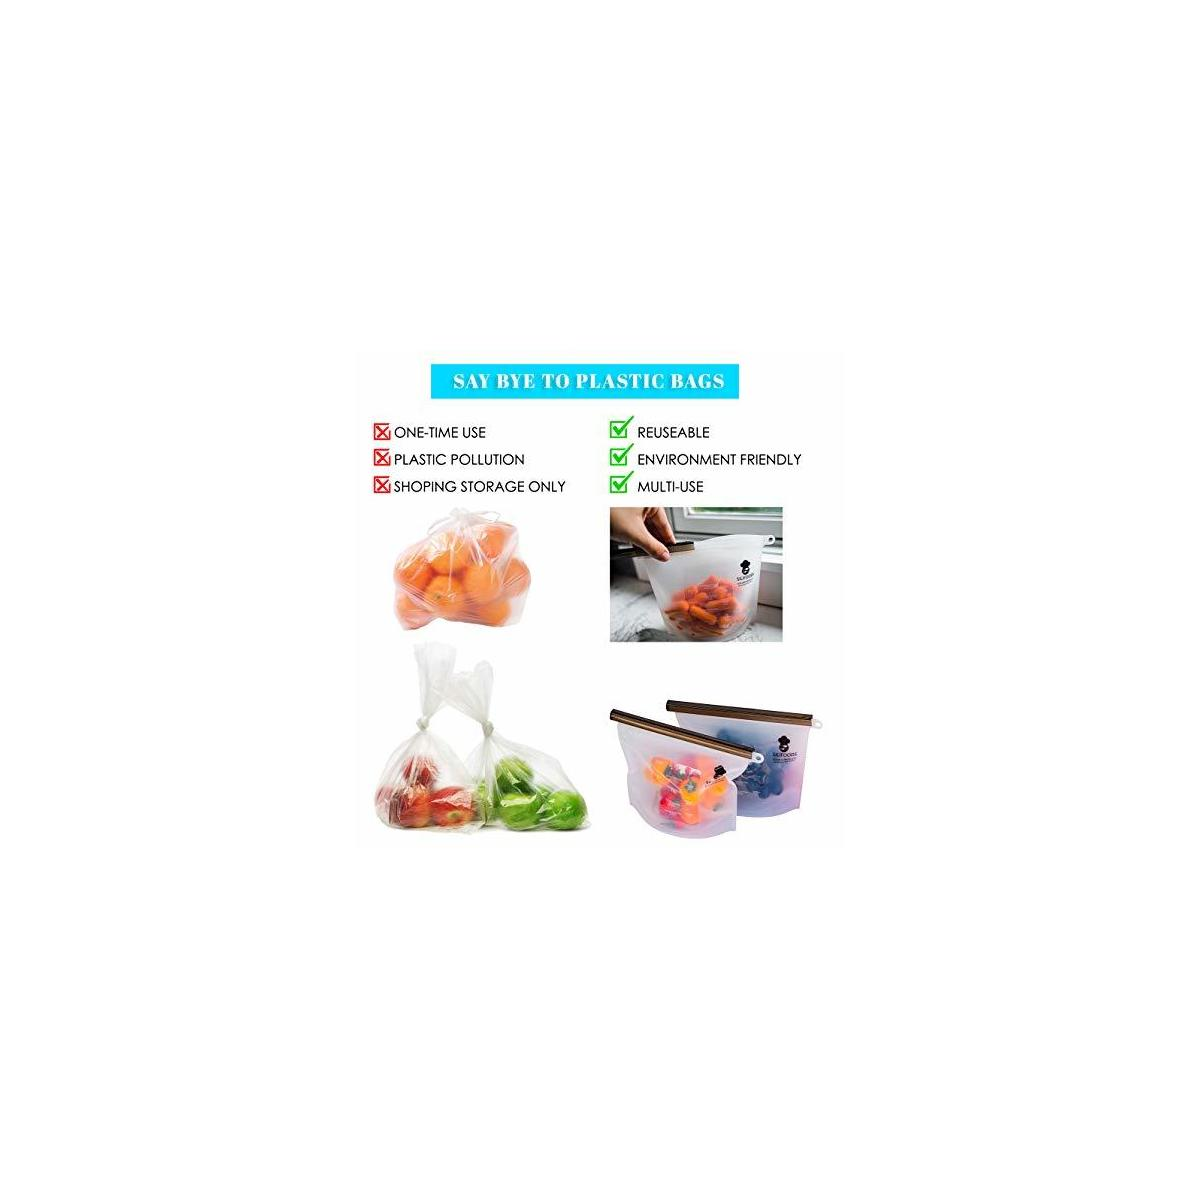 Silifoods-Silicone-Reusable-SILICONE-Silifoods Top Quality Silicone Reusable Food Storage Bags, 6 Silicone Reusable Bags 2 large bags(1.5 liter,6 cups) 4 medium bags (1 liter,4cups) 2 SILICONE REUSABLE STRAWS with cleaning brush